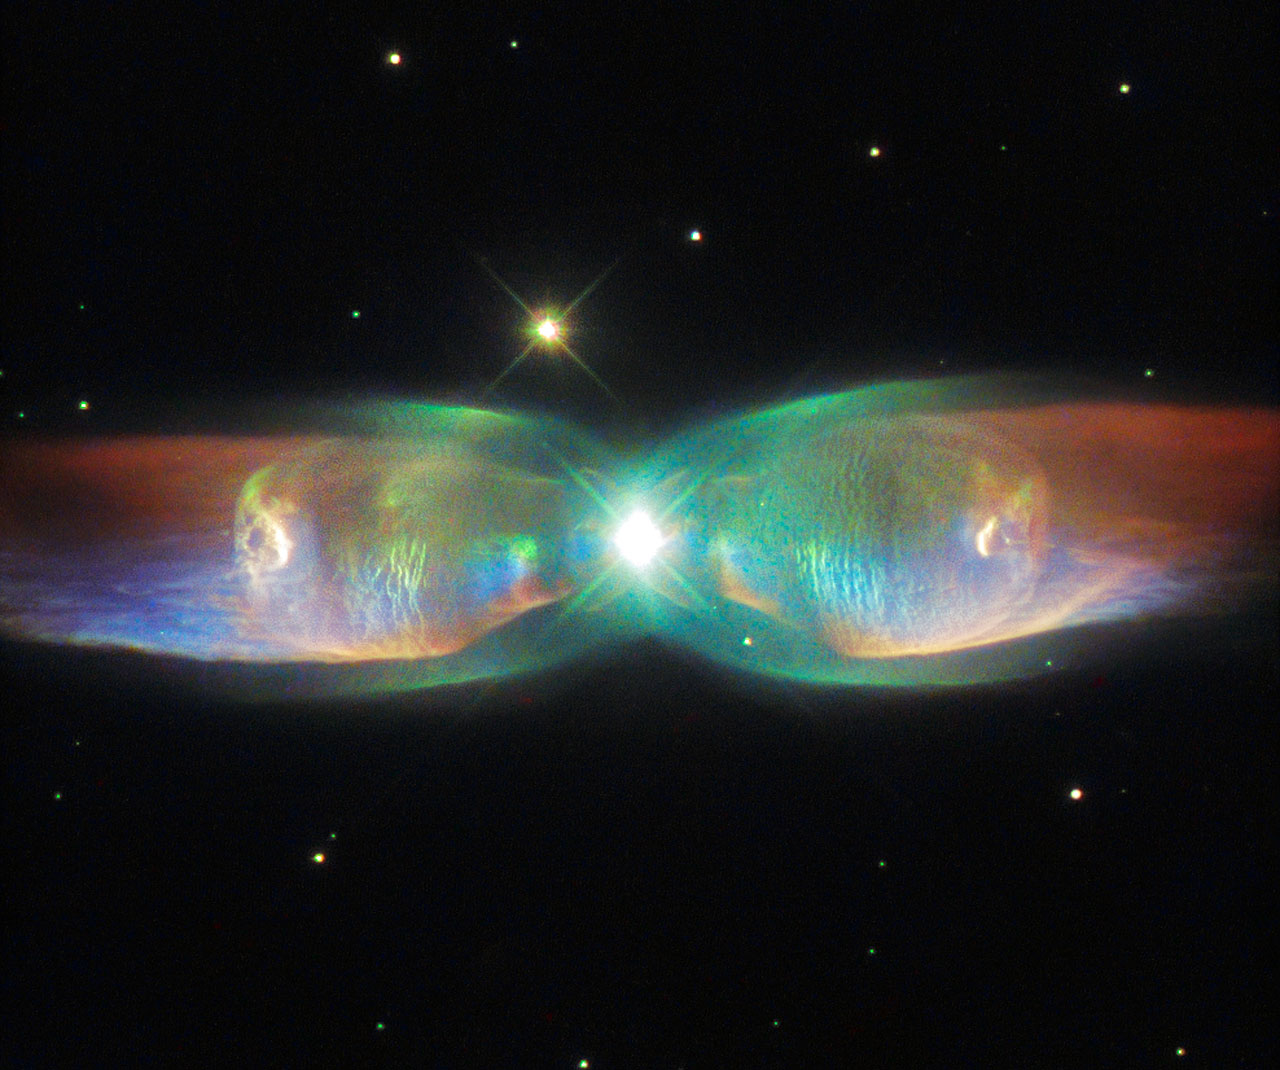 hubble space telescope star 2 - photo #19